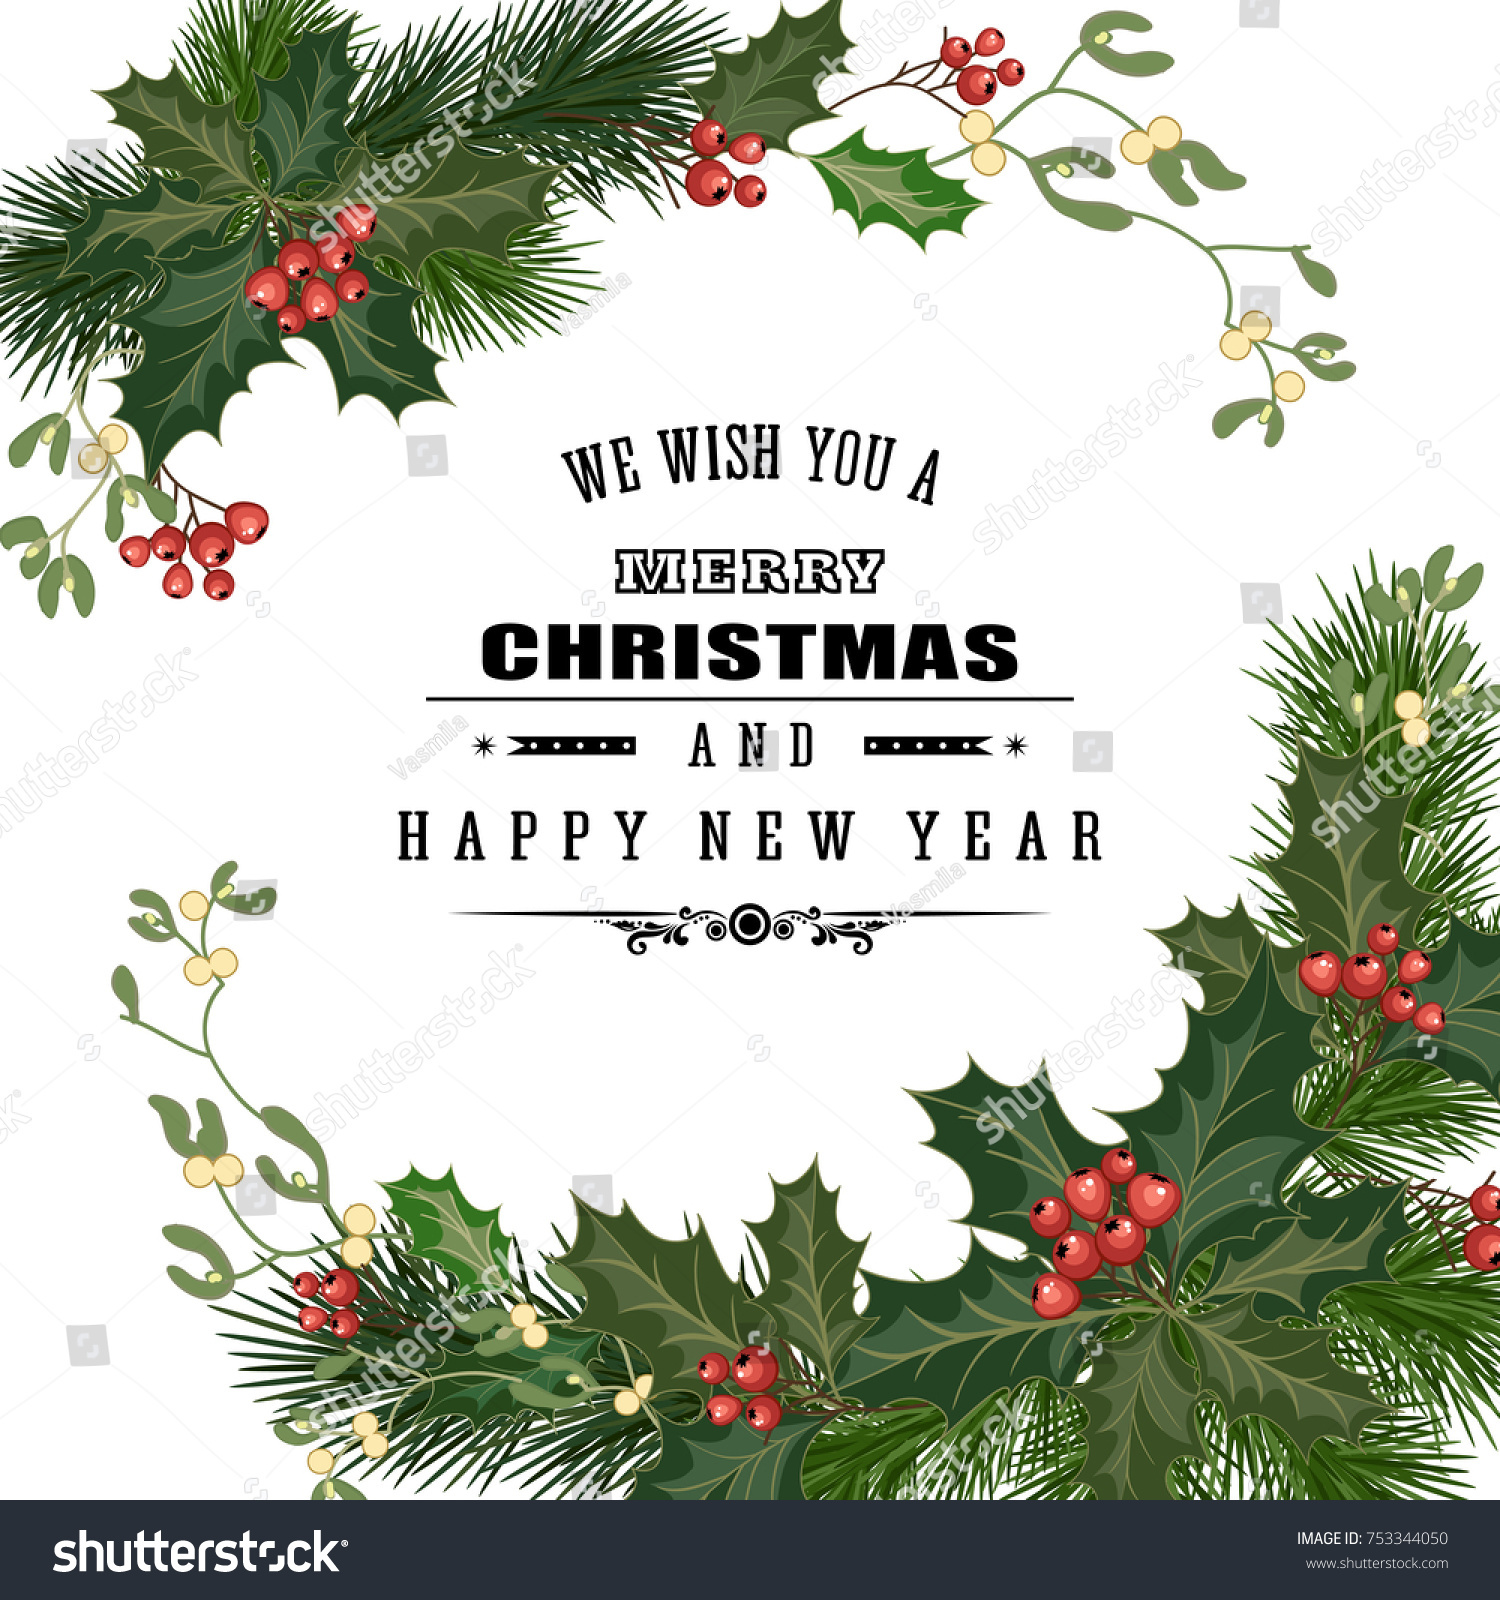 Merry Christmas Greeting Card Traditional Decorations Stock Vector ...